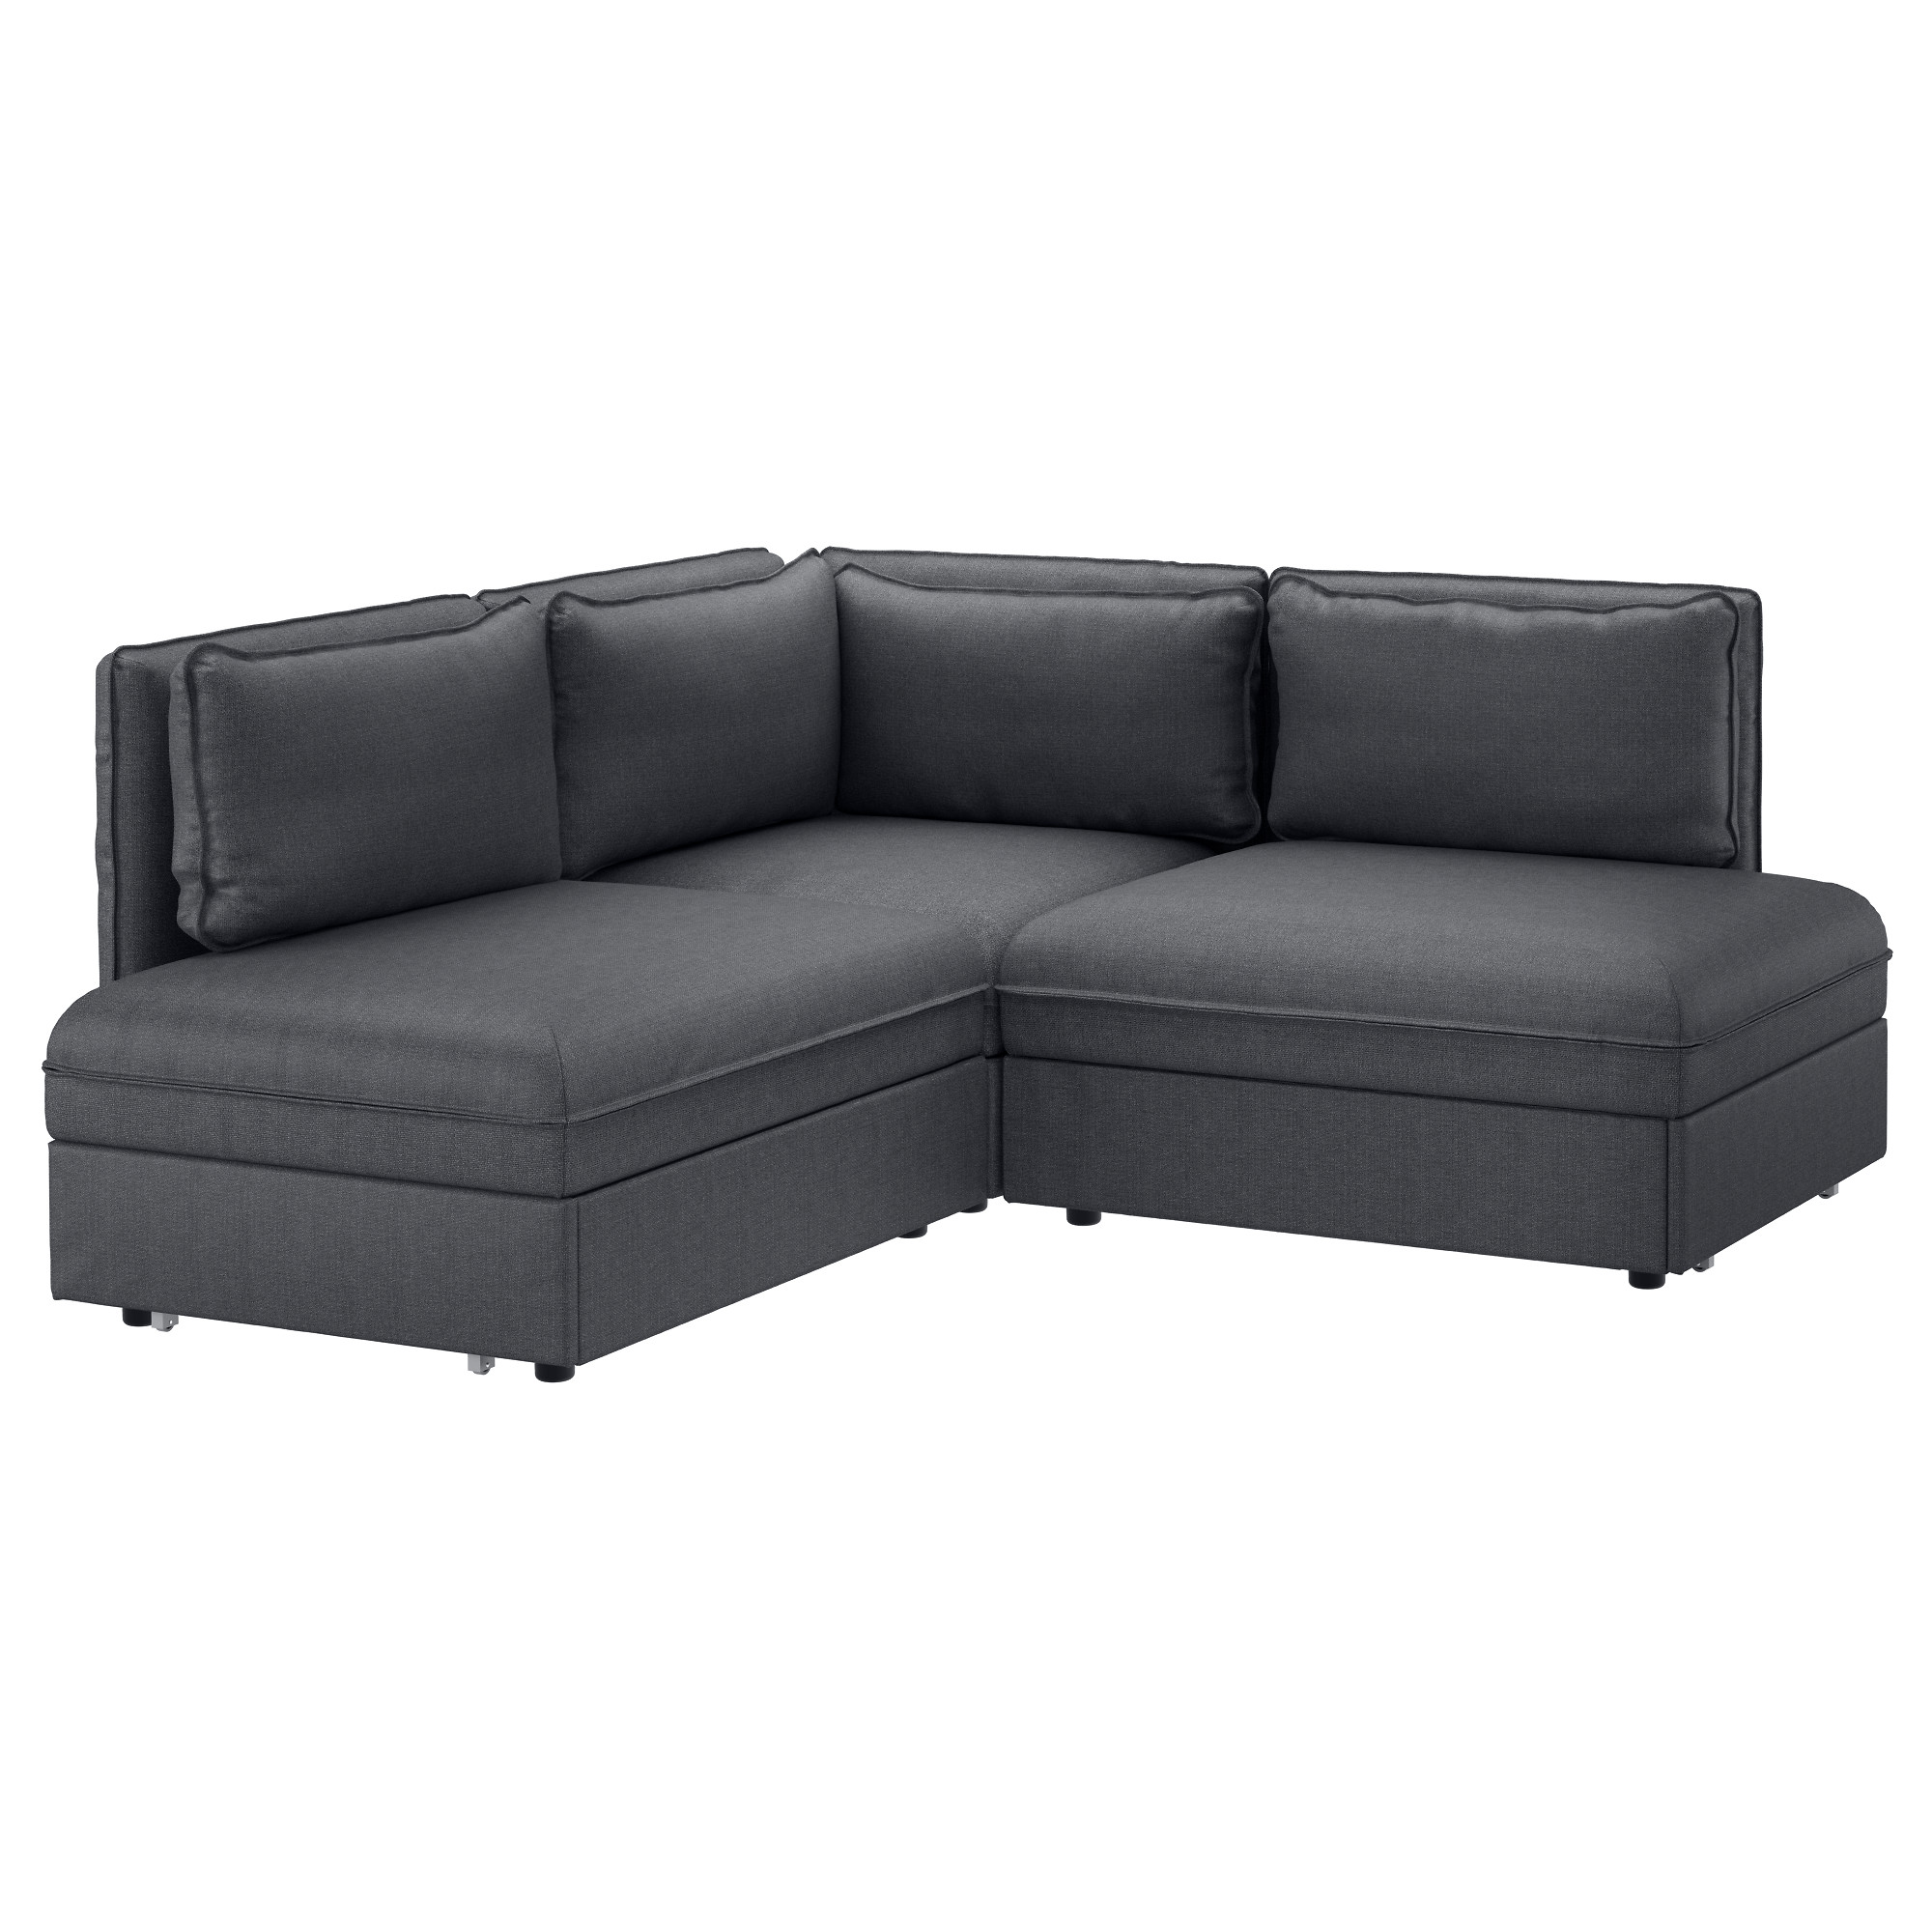 VALLENTUNA sleeper sectional 2-seat Hillared dark gray Width 76   Depth  sc 1 st  Ikea : sofa sleeper sectionals - Sectionals, Sofas & Couches